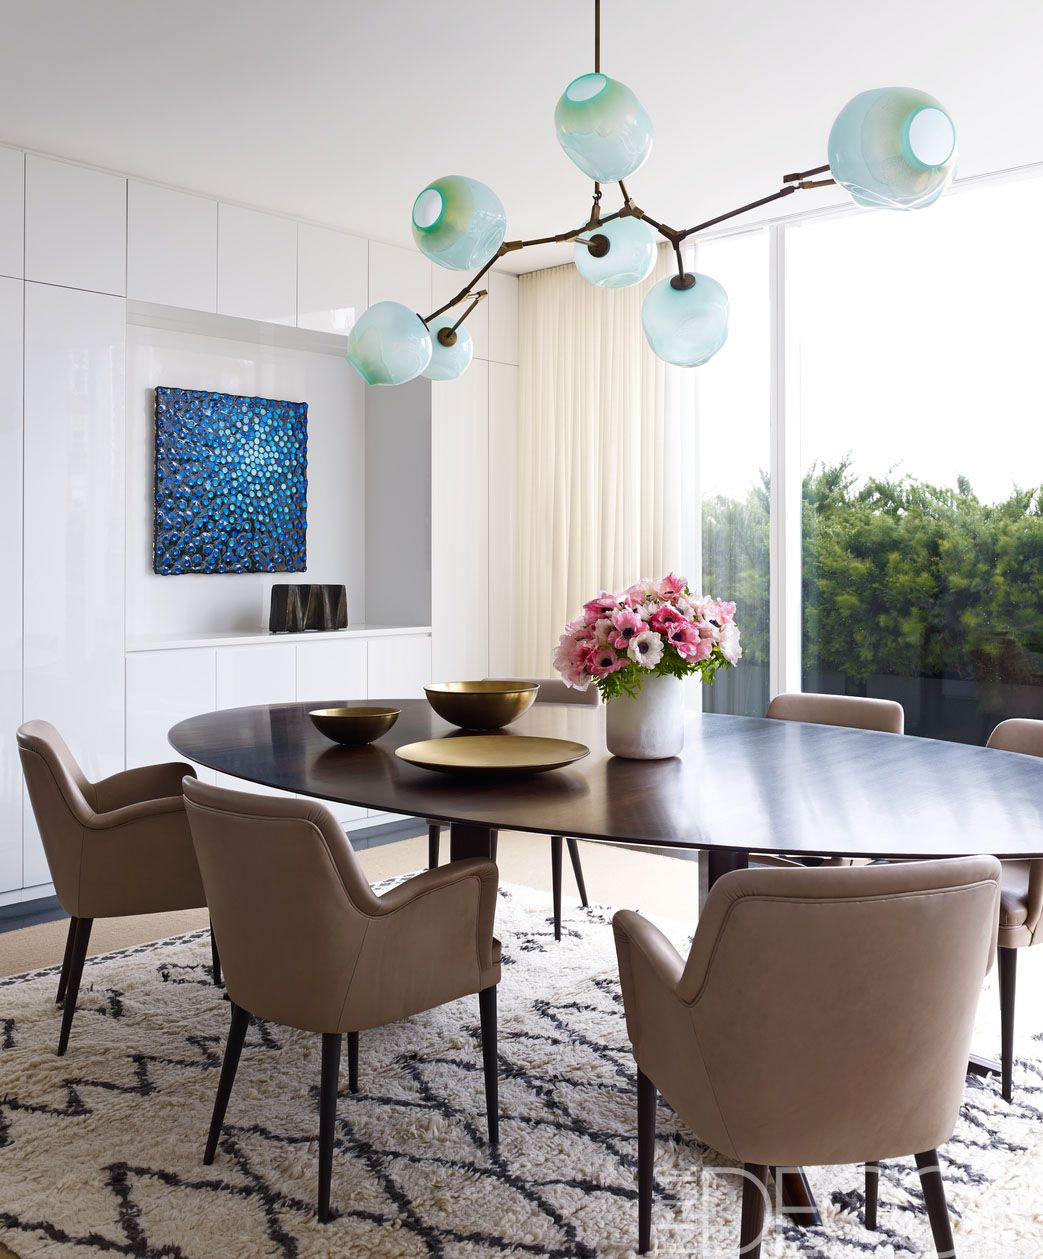 Dining Room Decoration Ideas Inspiration 25 Modern Dining Room Decorating Ideas  Contemporary Dining Room . Decorating Inspiration